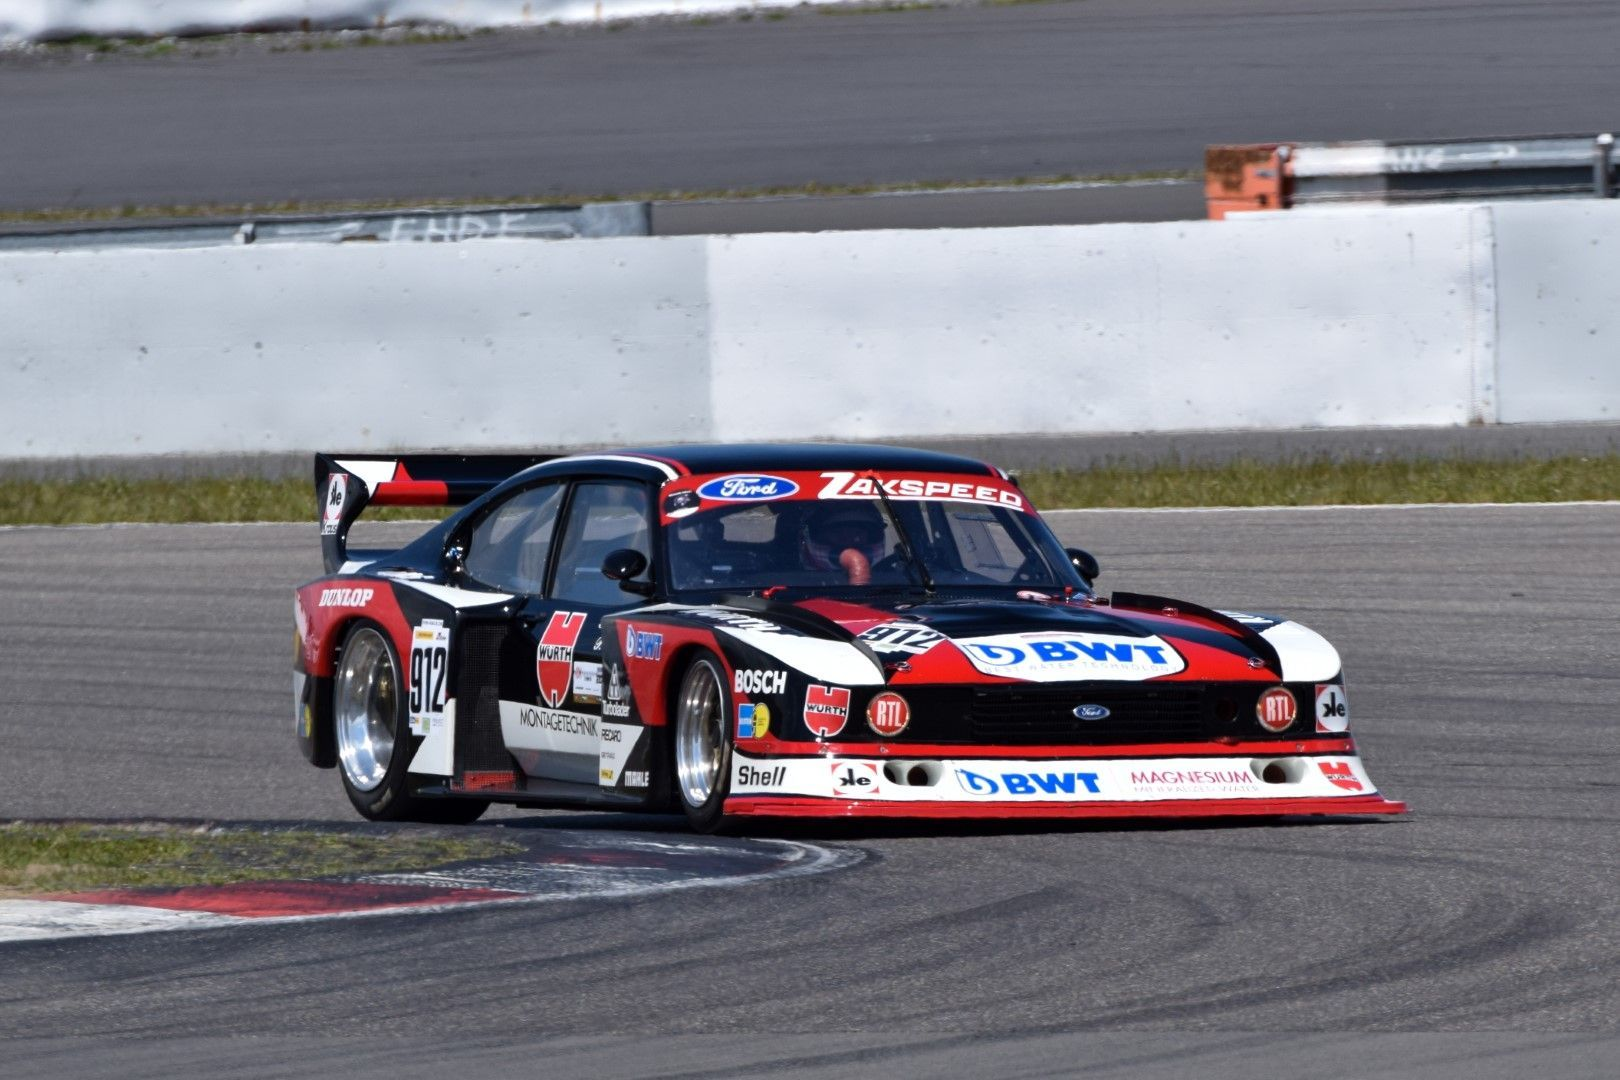 1980 Ford Zakspeed Turbo Capri As Shown At The 2019 Goodwood